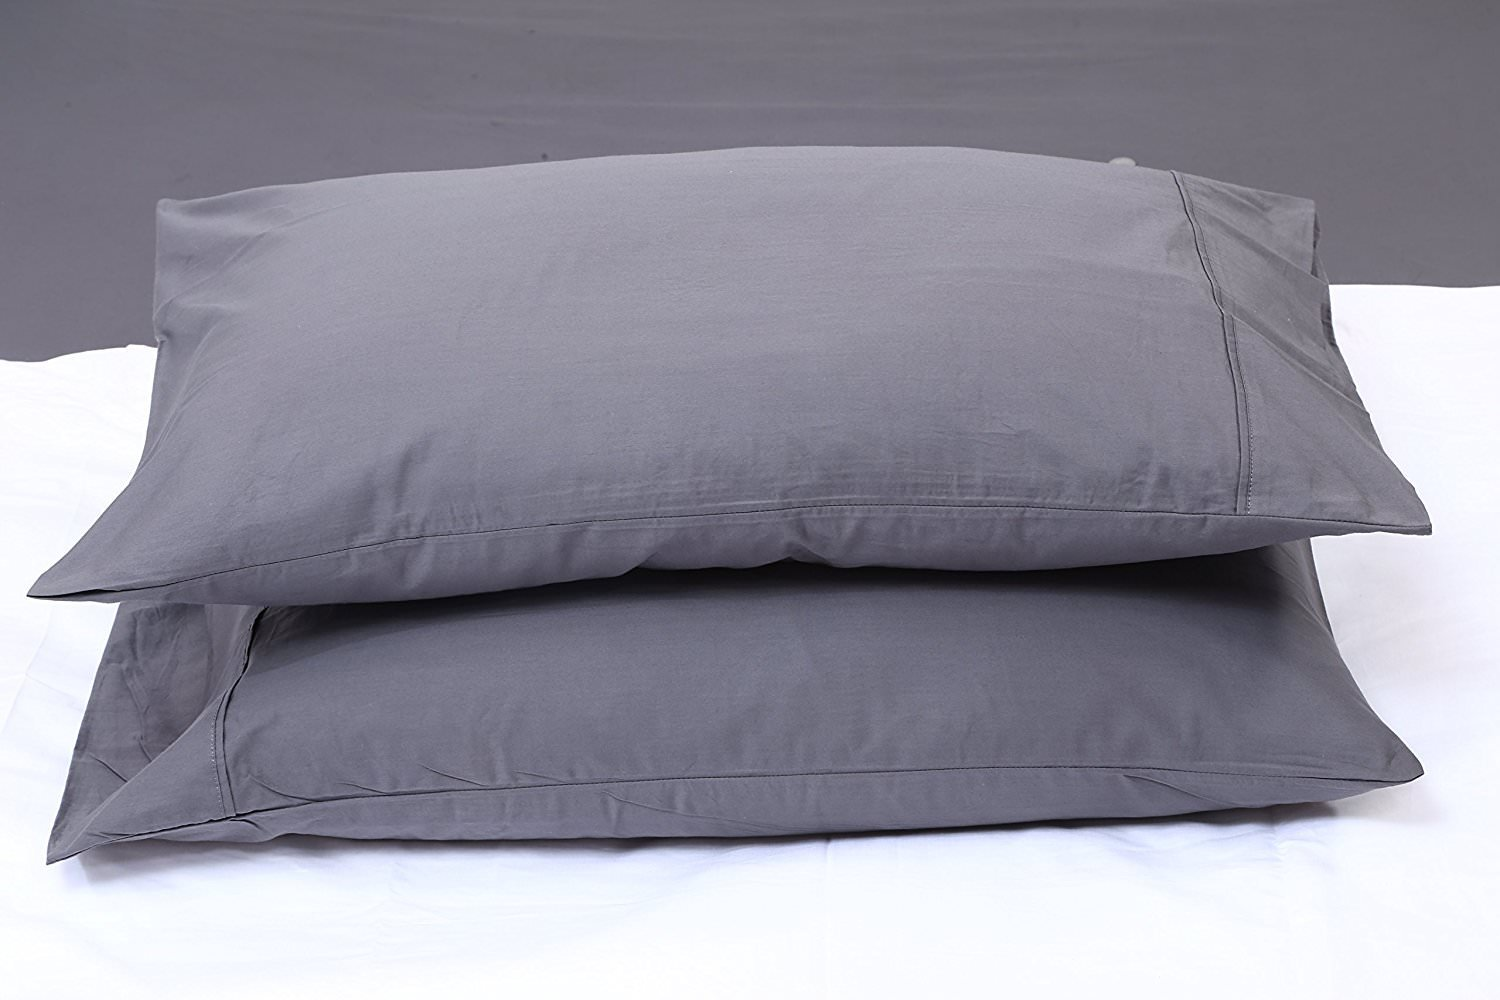 Rajlinen Ultra Soft Cozy 100% Percale Cotton 4 PCs Bed Sheet Set - 400 Thread Count 15 inch Deep Pocket - Extremely Smooth Stronger Durable Quality Bedding (Dark Grey Solid,Twin-XL)